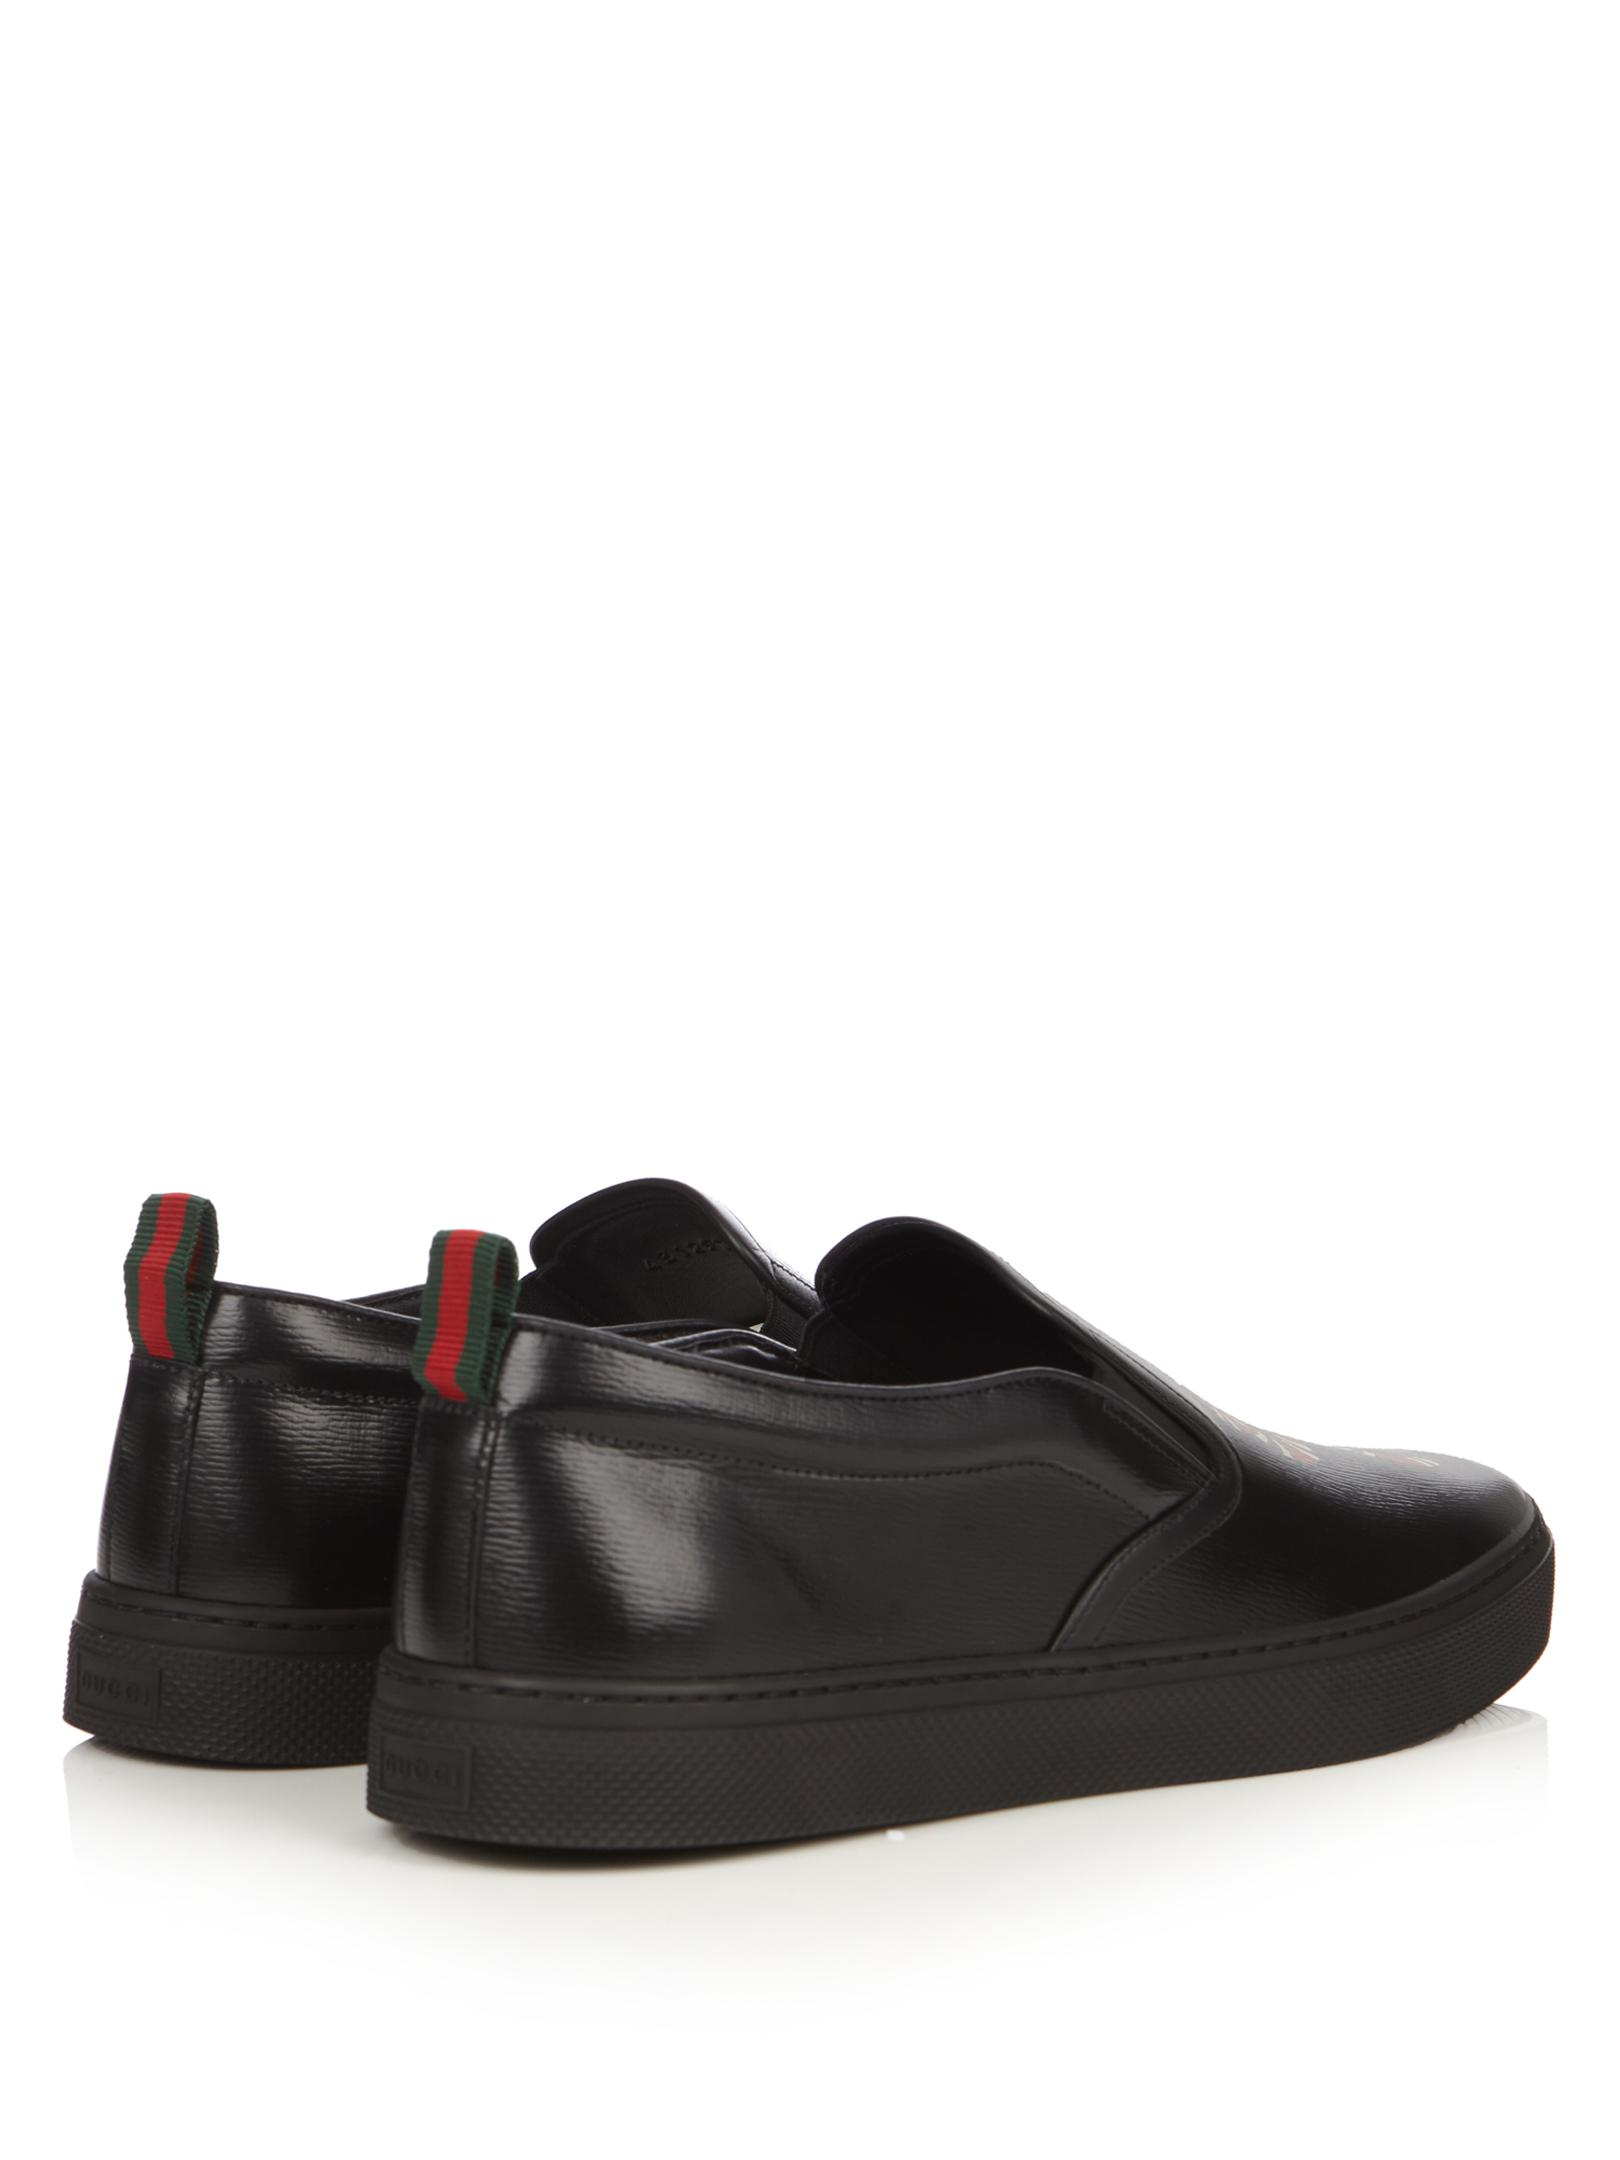 064d1f06a8c Lyst - Gucci Snake-print Leather Slip-on Trainers in Black for Men